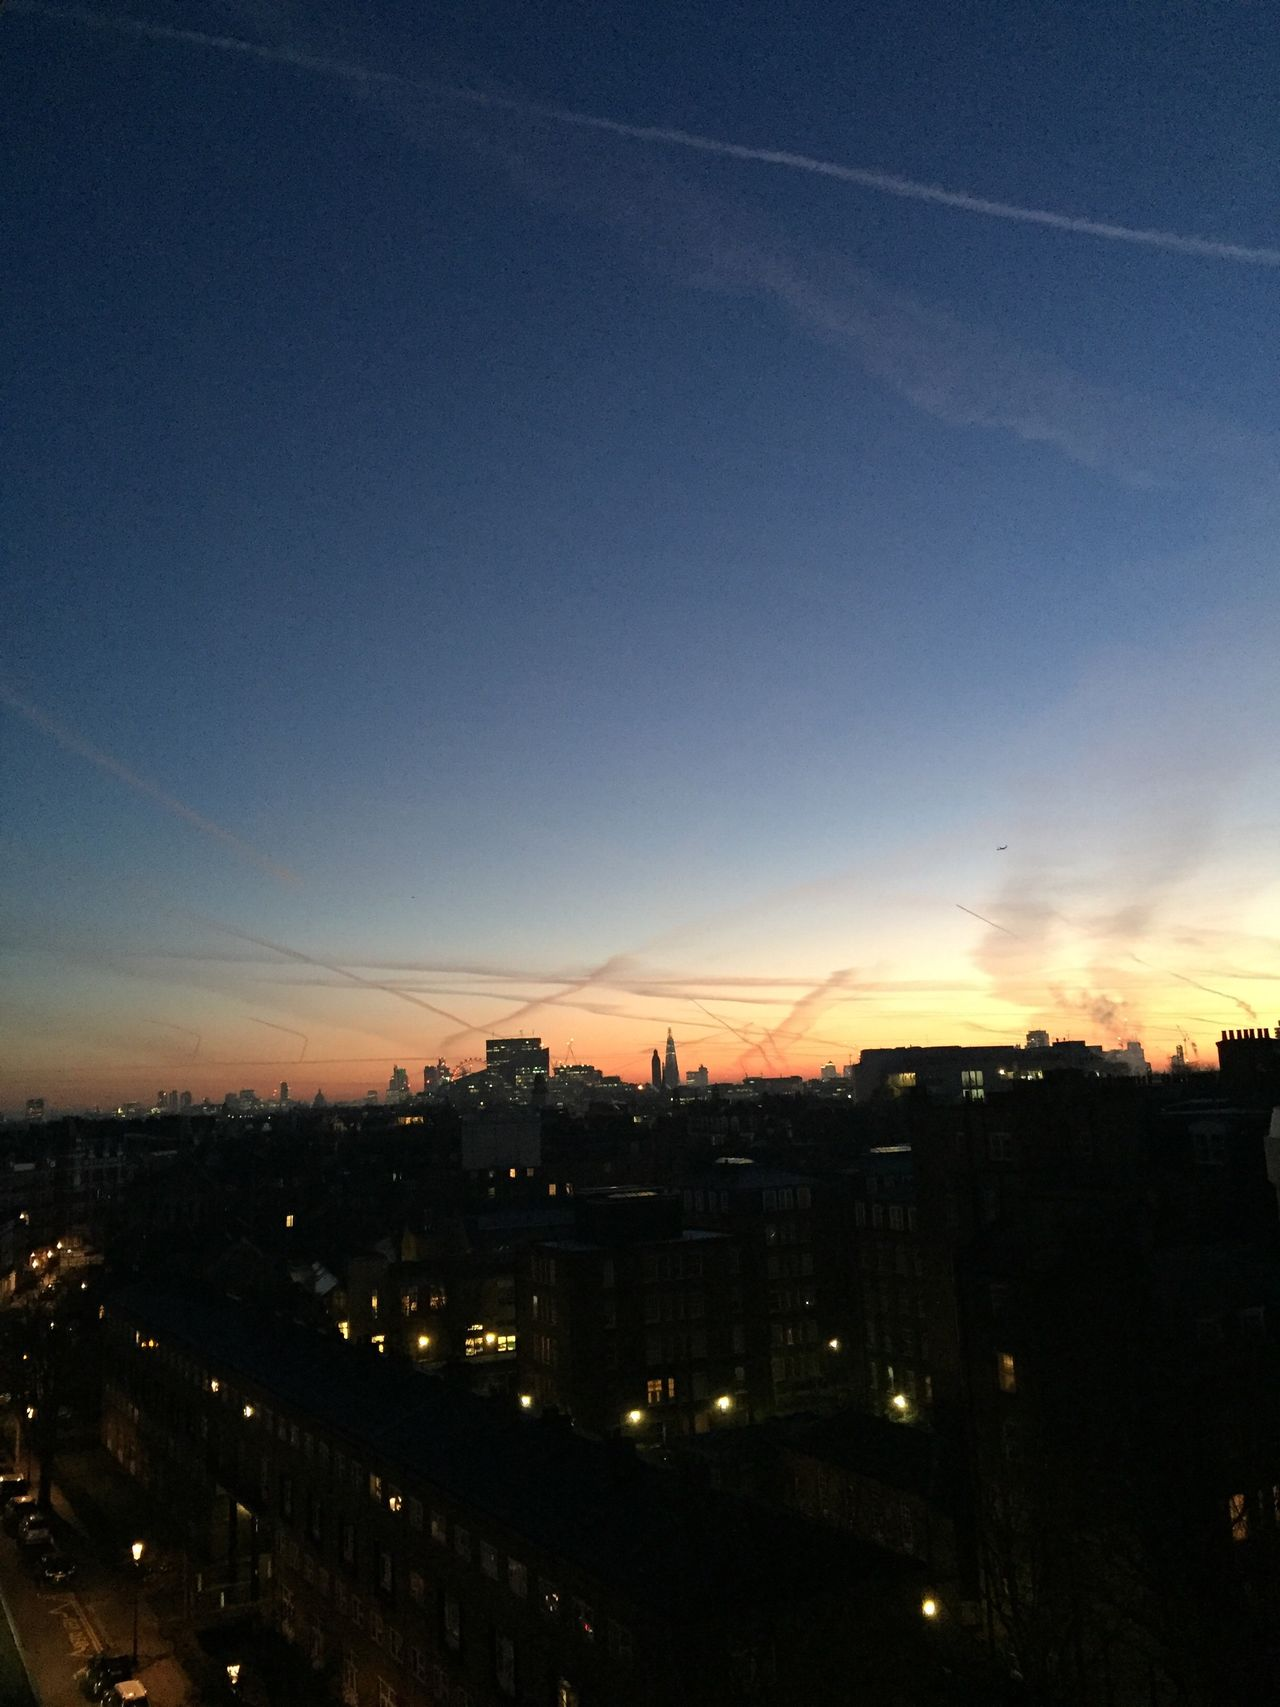 No filter Sunrise Sky Illuminated City Cityscape Outdoors Nature Morningsky Morning View No People